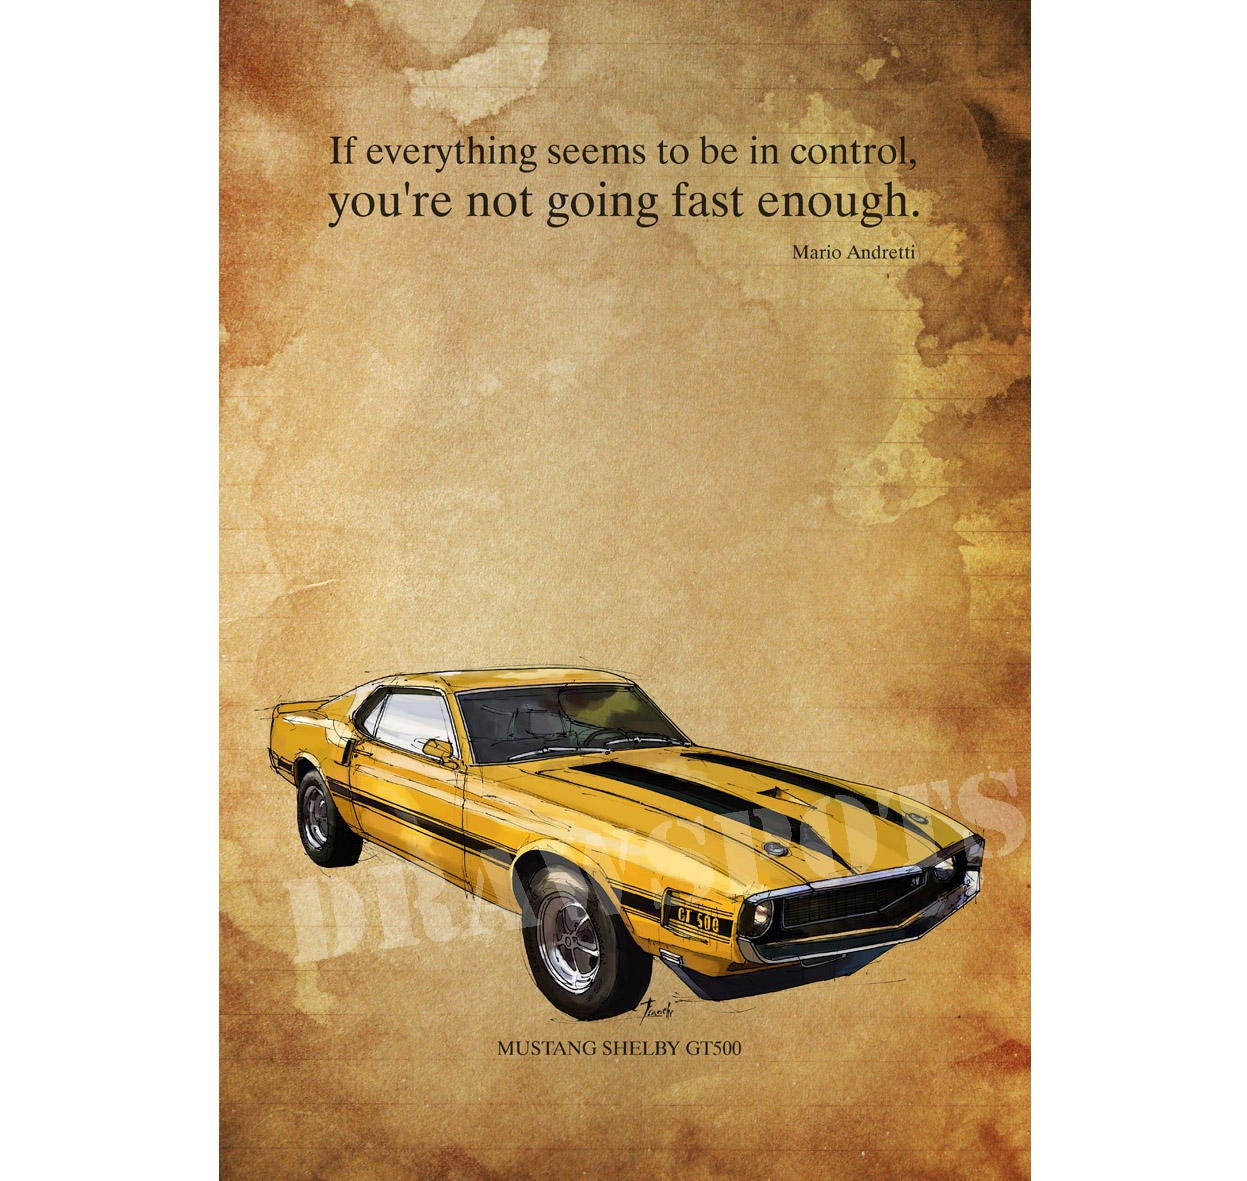 MUSTANG GT500 Yellow and black.Senna quote If everything | Etsy